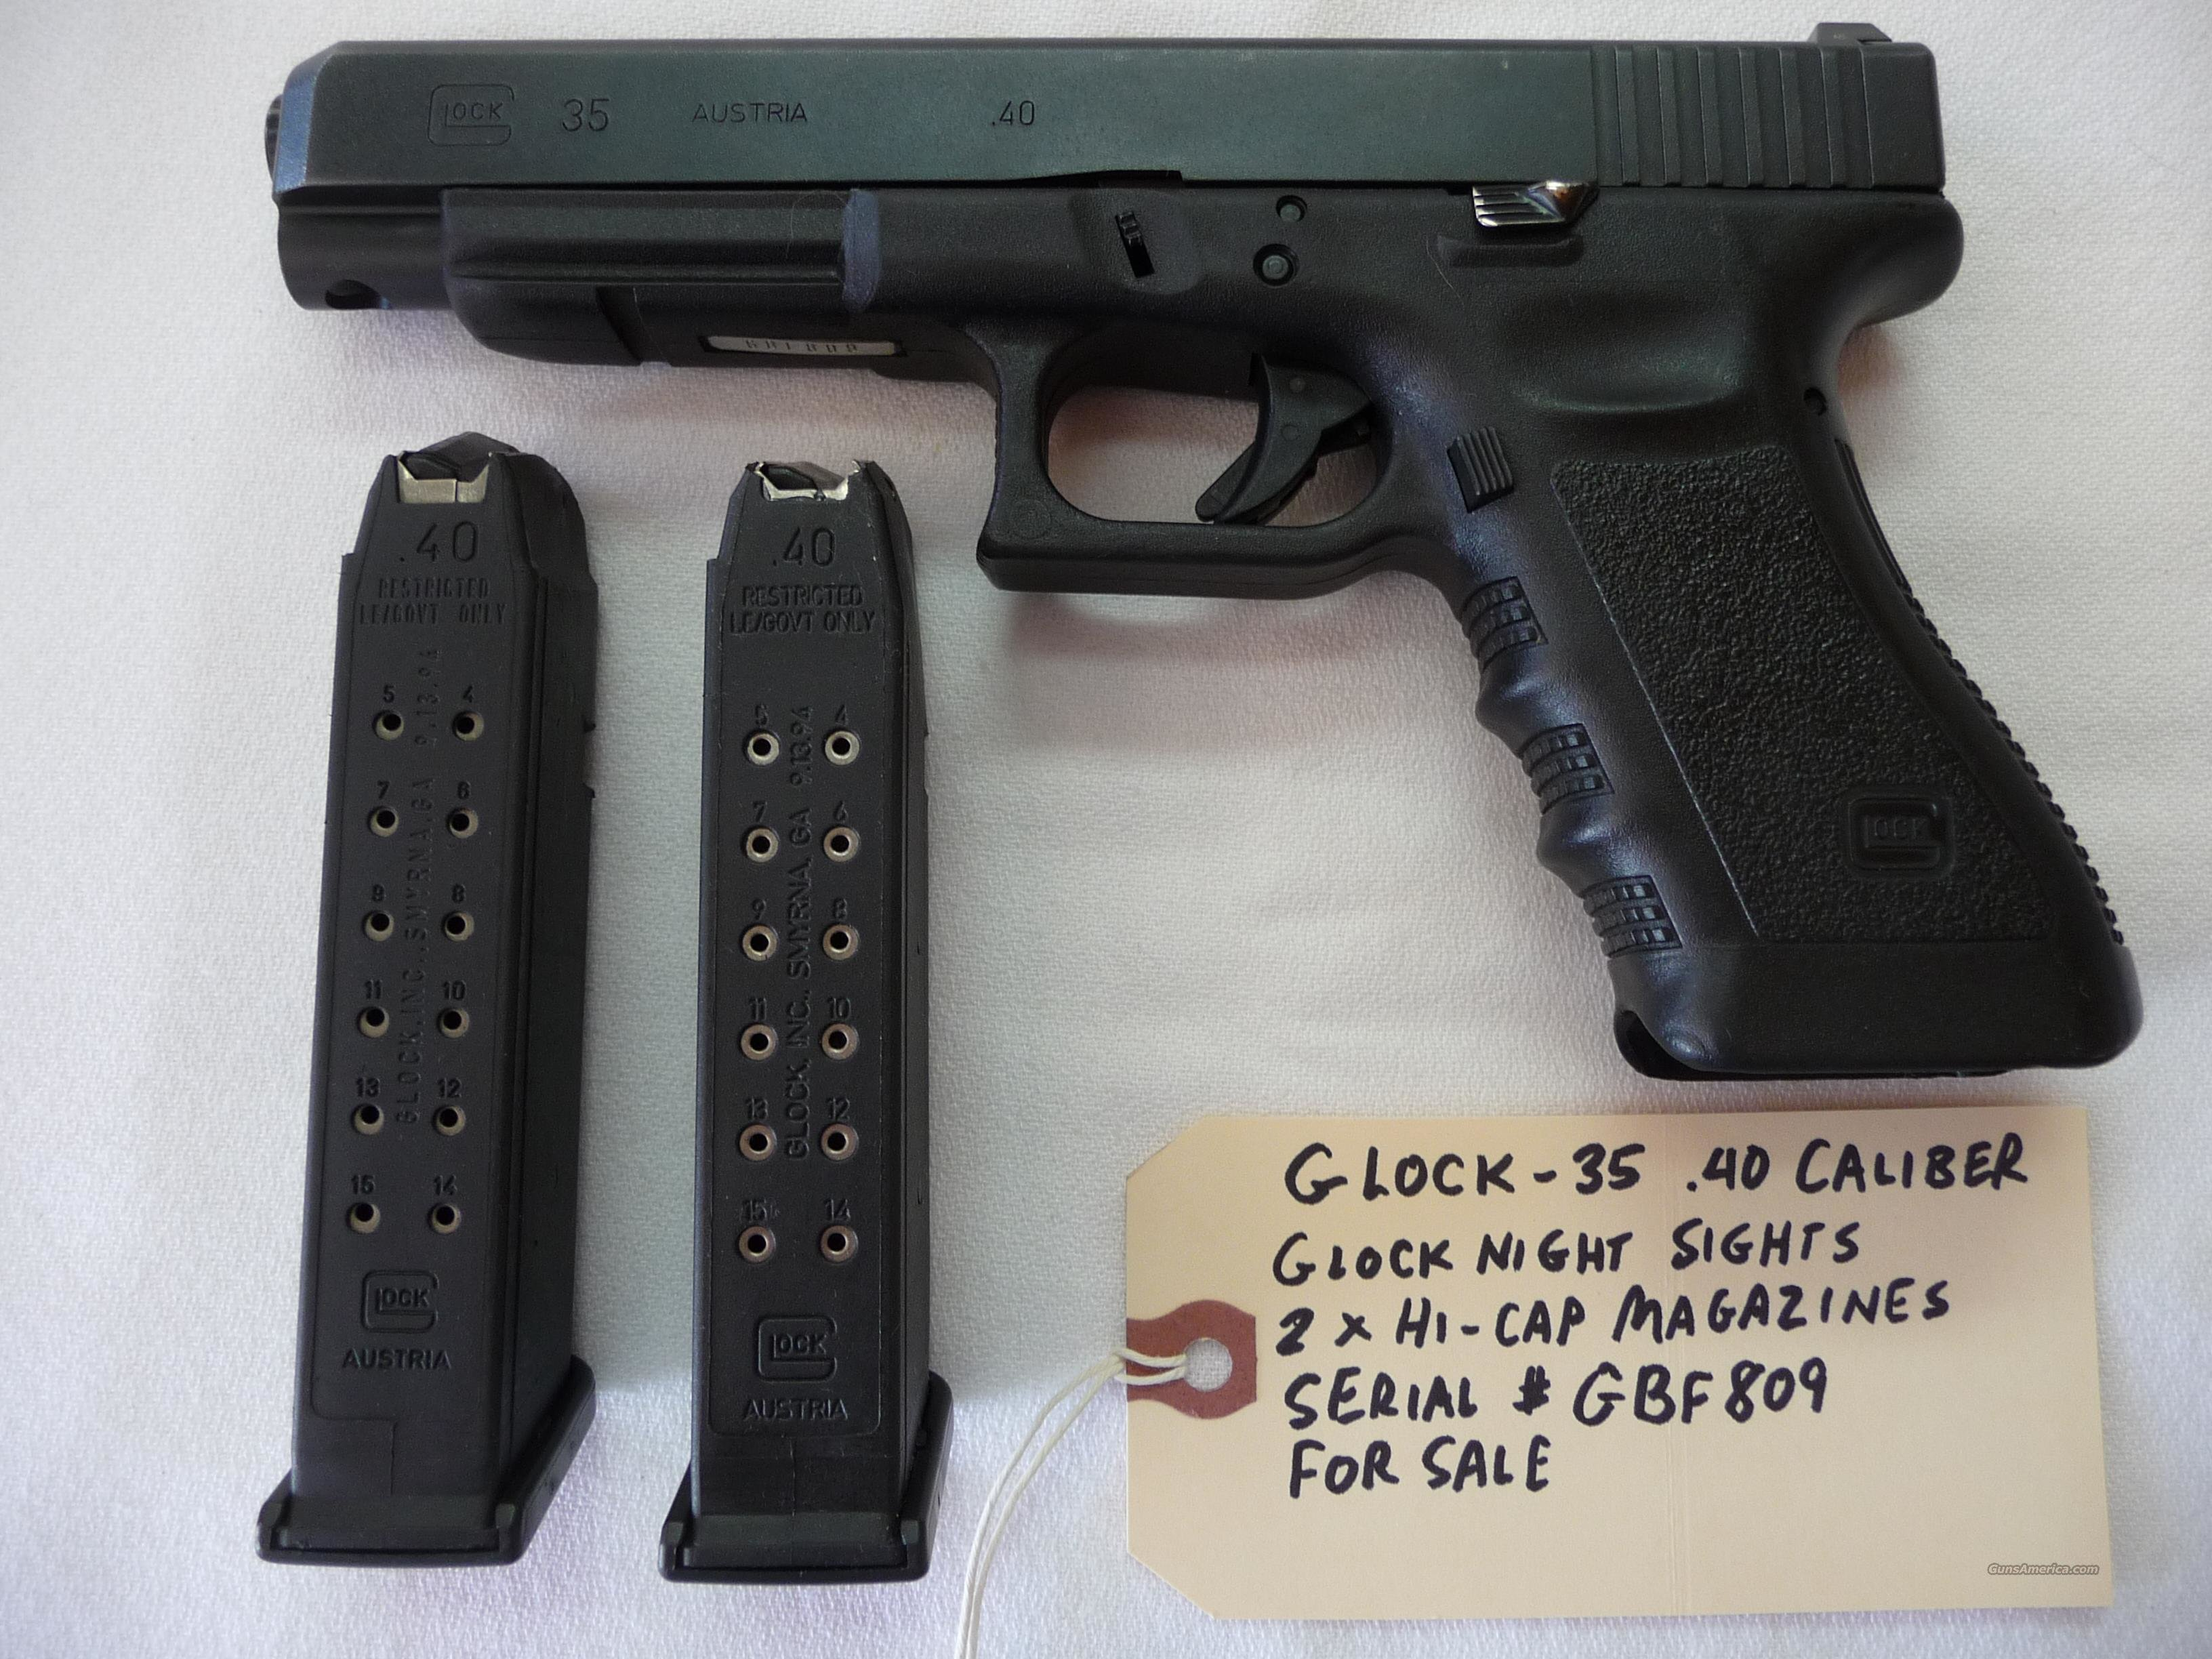 Uncovered: gen5 glock 22 with manual safety in são paulo brazil.